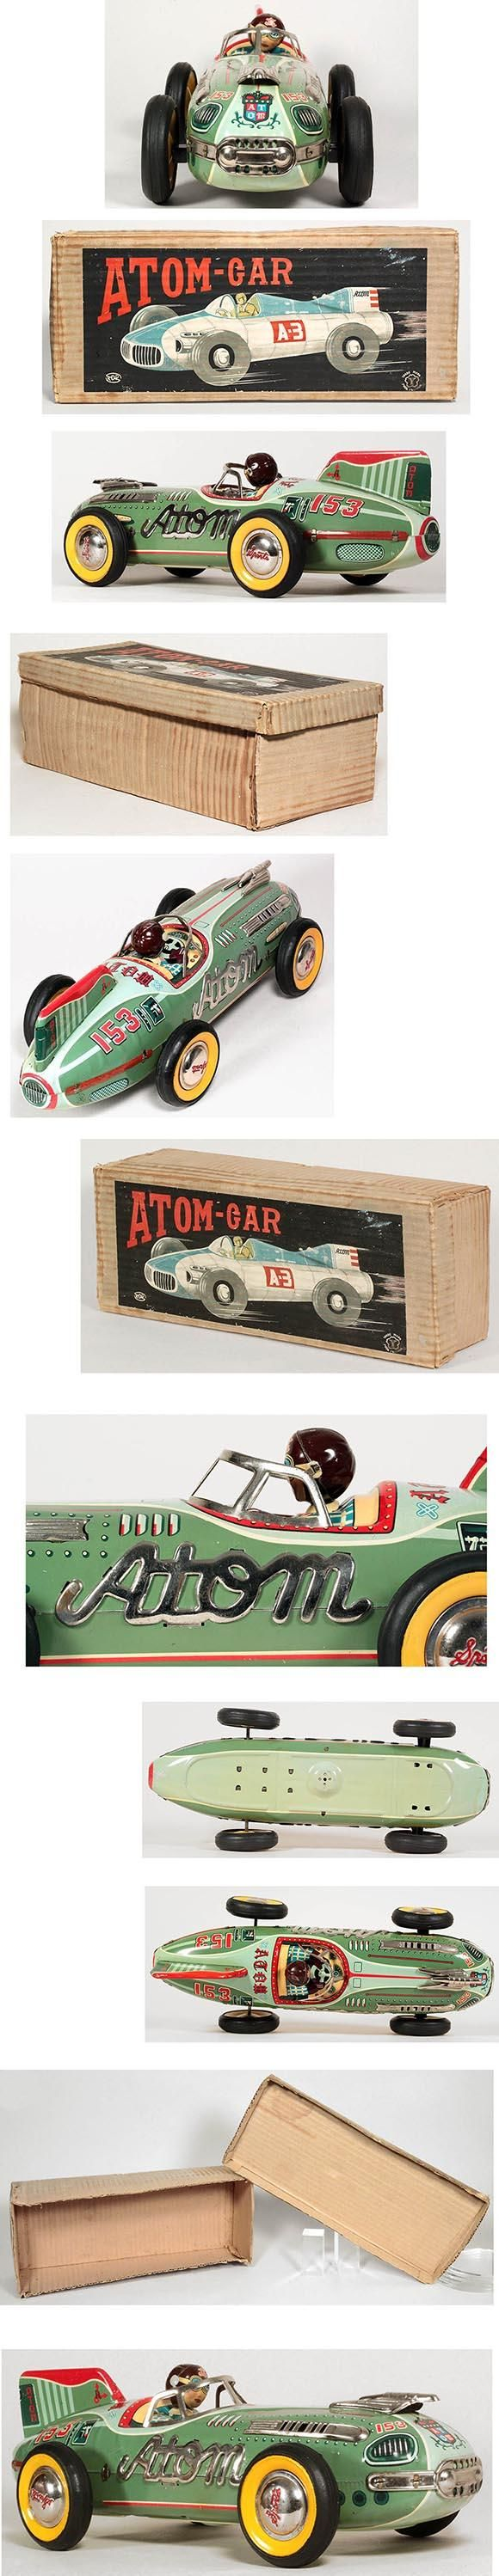 c.1955 Yonezawa, #153 Atom-Car in Original Box